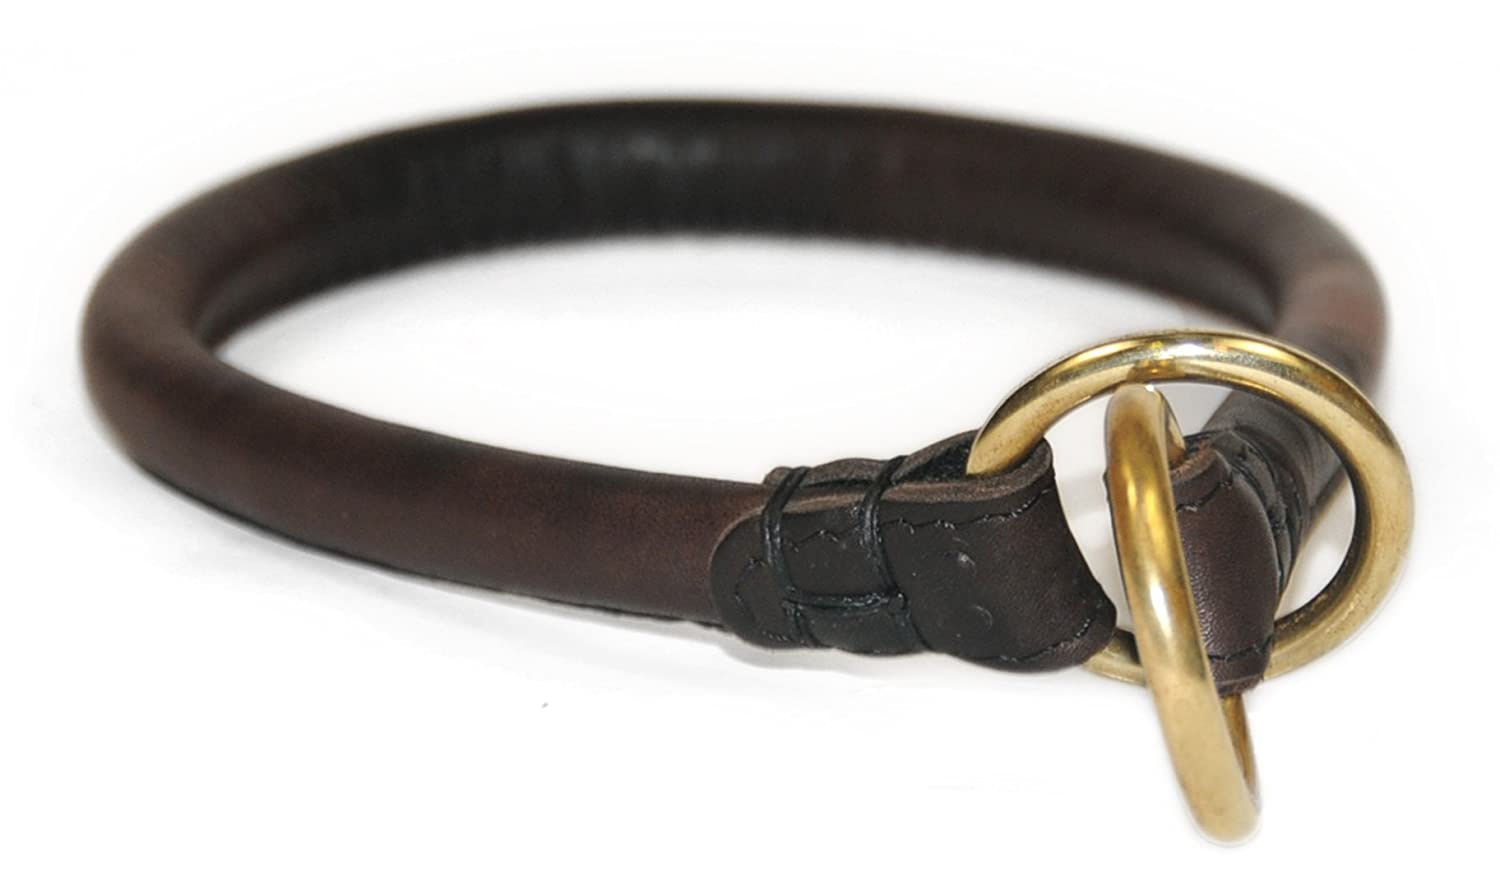 Dean and Tyler DESPERADO , Rounded Dog Choke Collar with Brass Hardware Brown Size 22-Inch by 1 2-Inch Diameter Fits Neck 20-Inch to 22-Inch